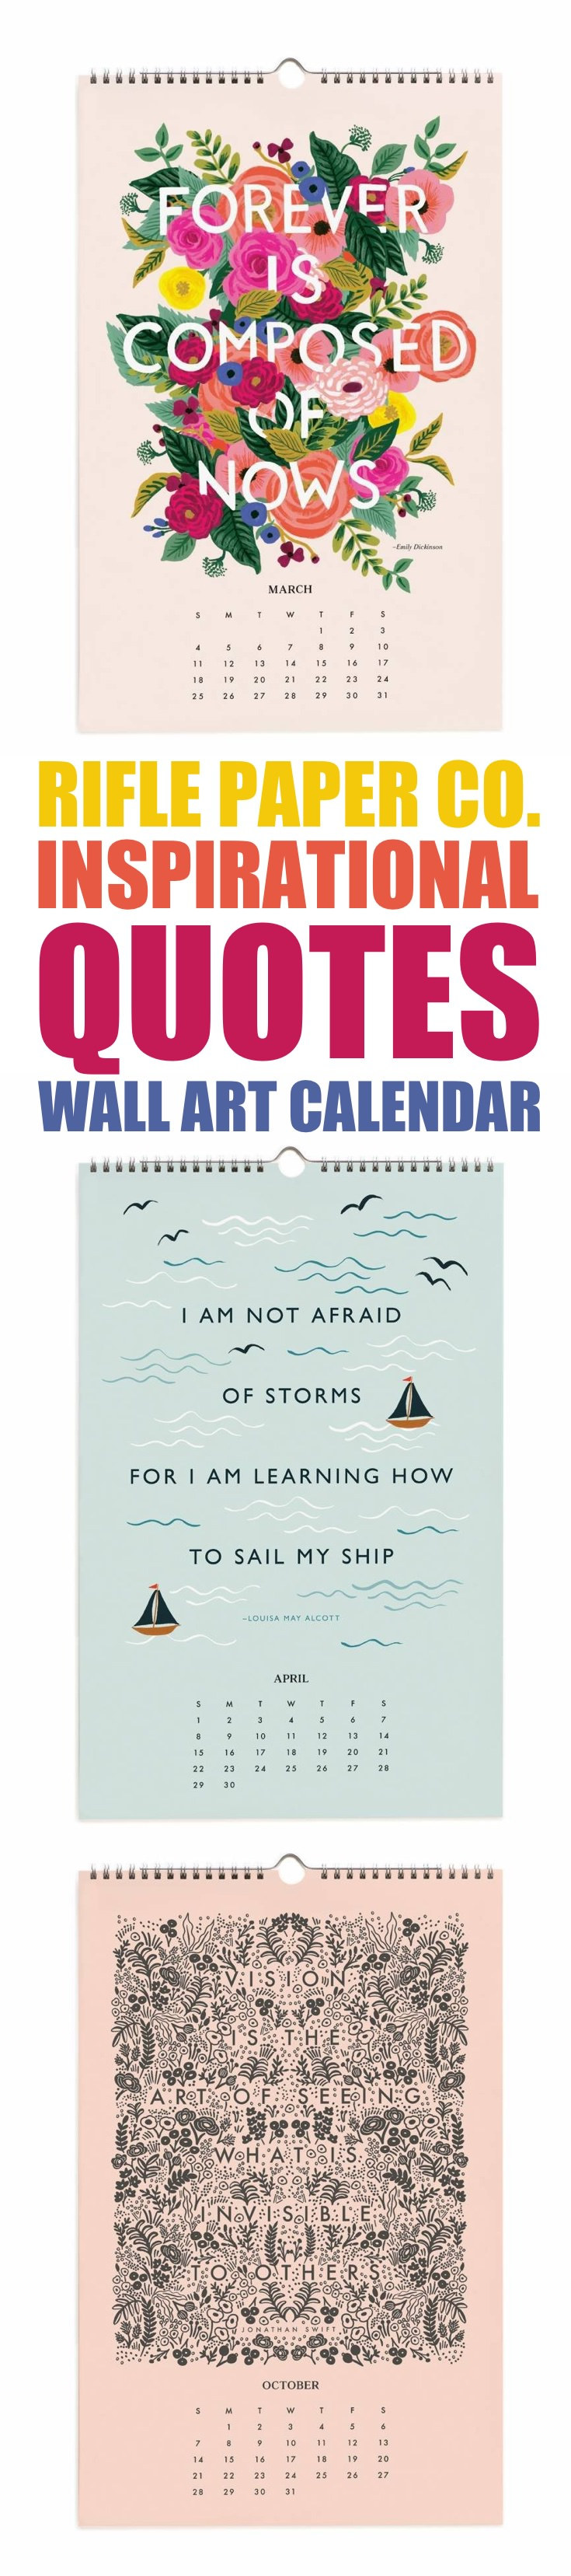 I love the new Rifle Paper Co inspirational quotes wall calendar! If you or your gift recipient loves florals and inspirational quotes, this is the perfect calendar for them!